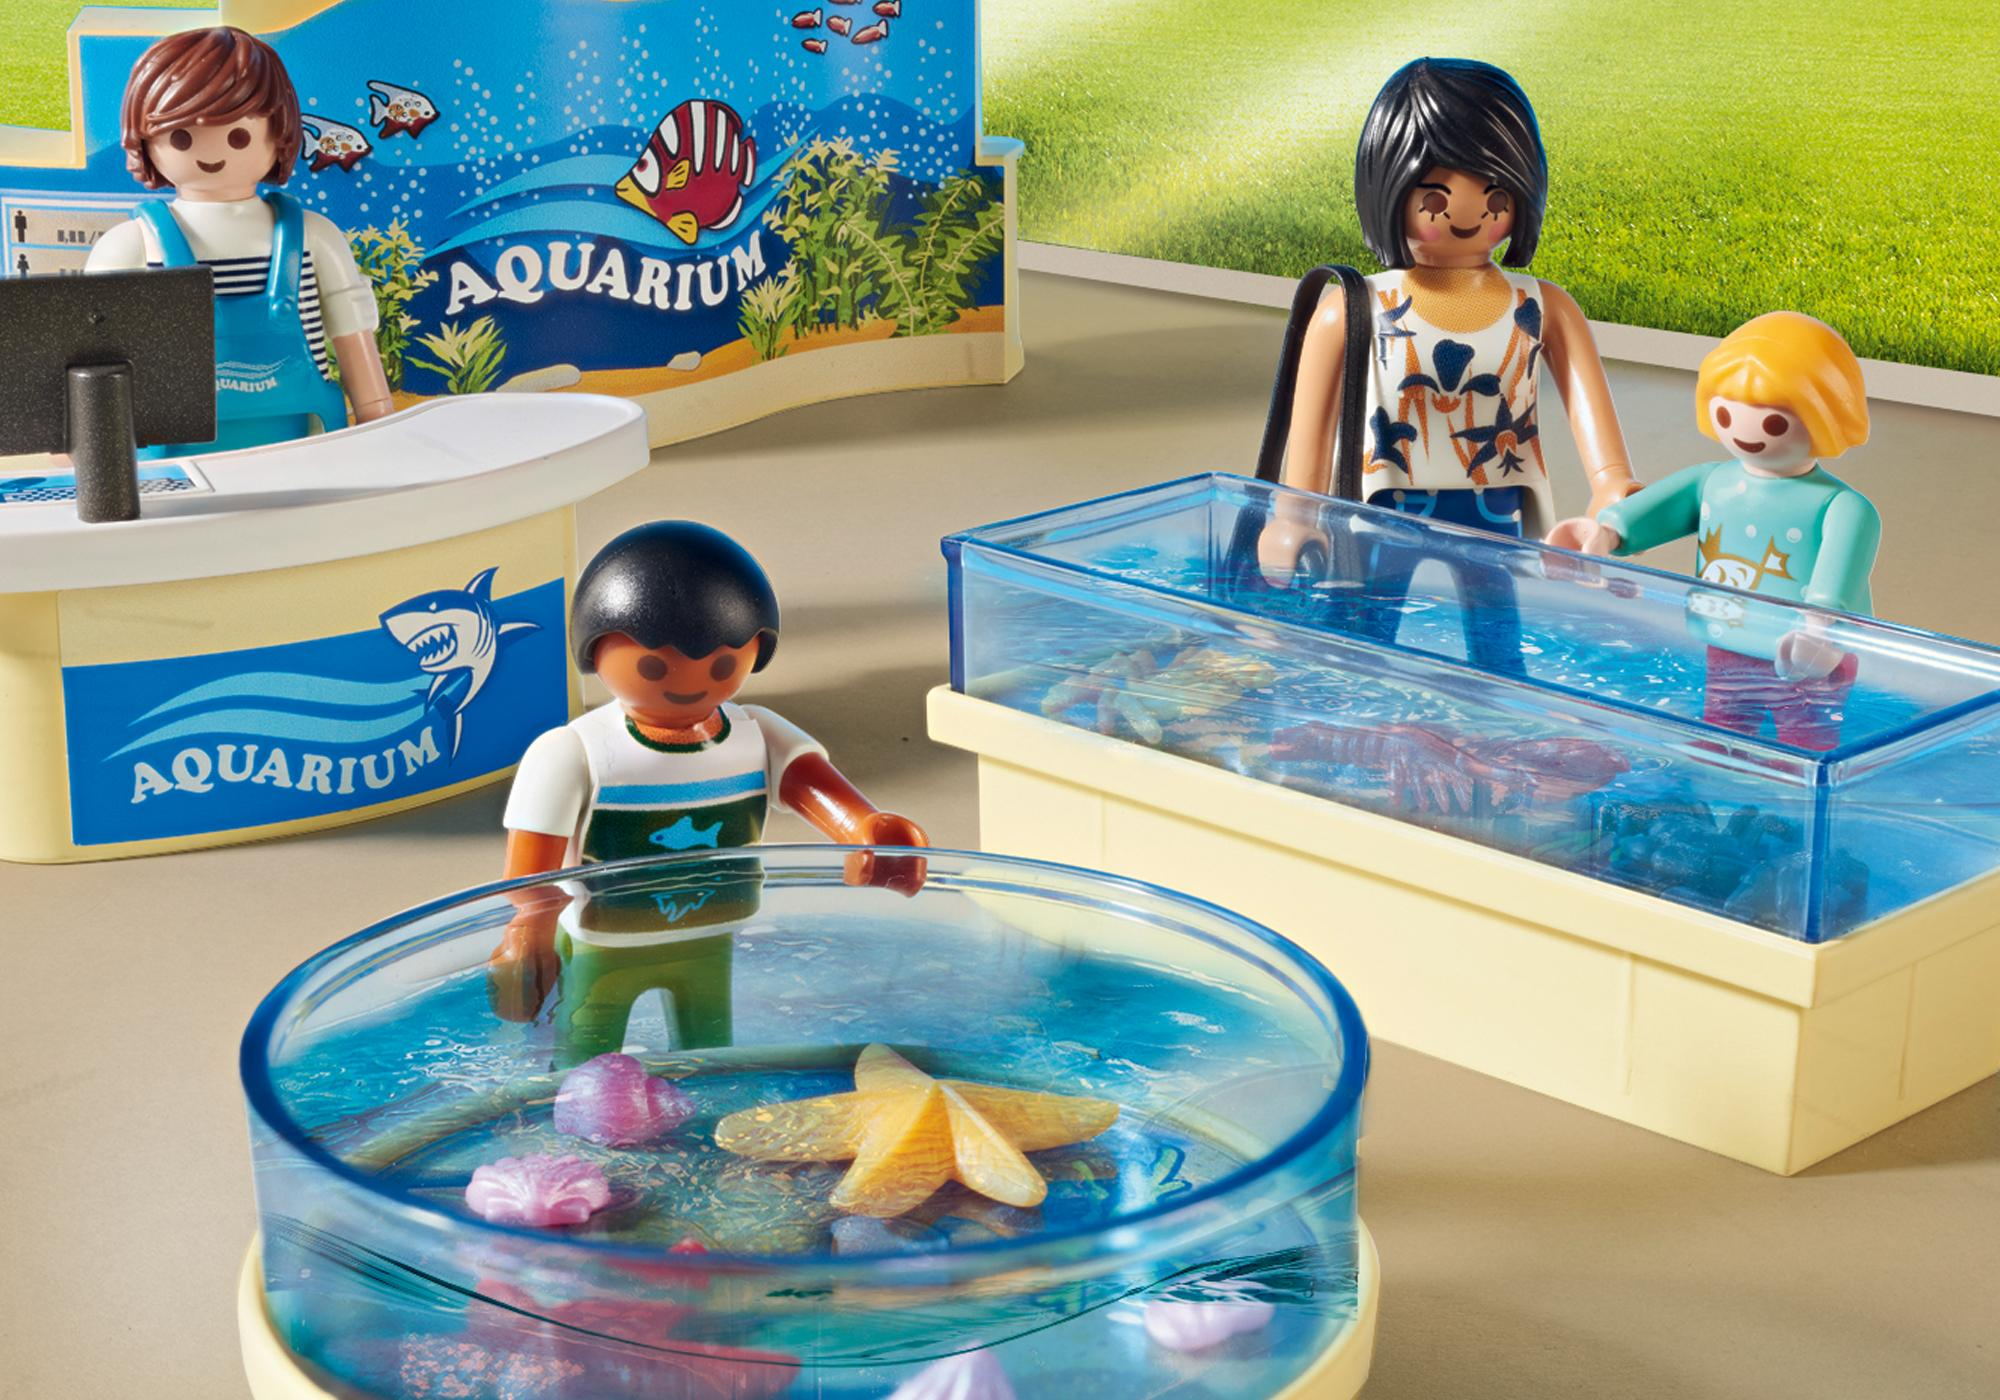 http://media.playmobil.com/i/playmobil/9061_product_extra2